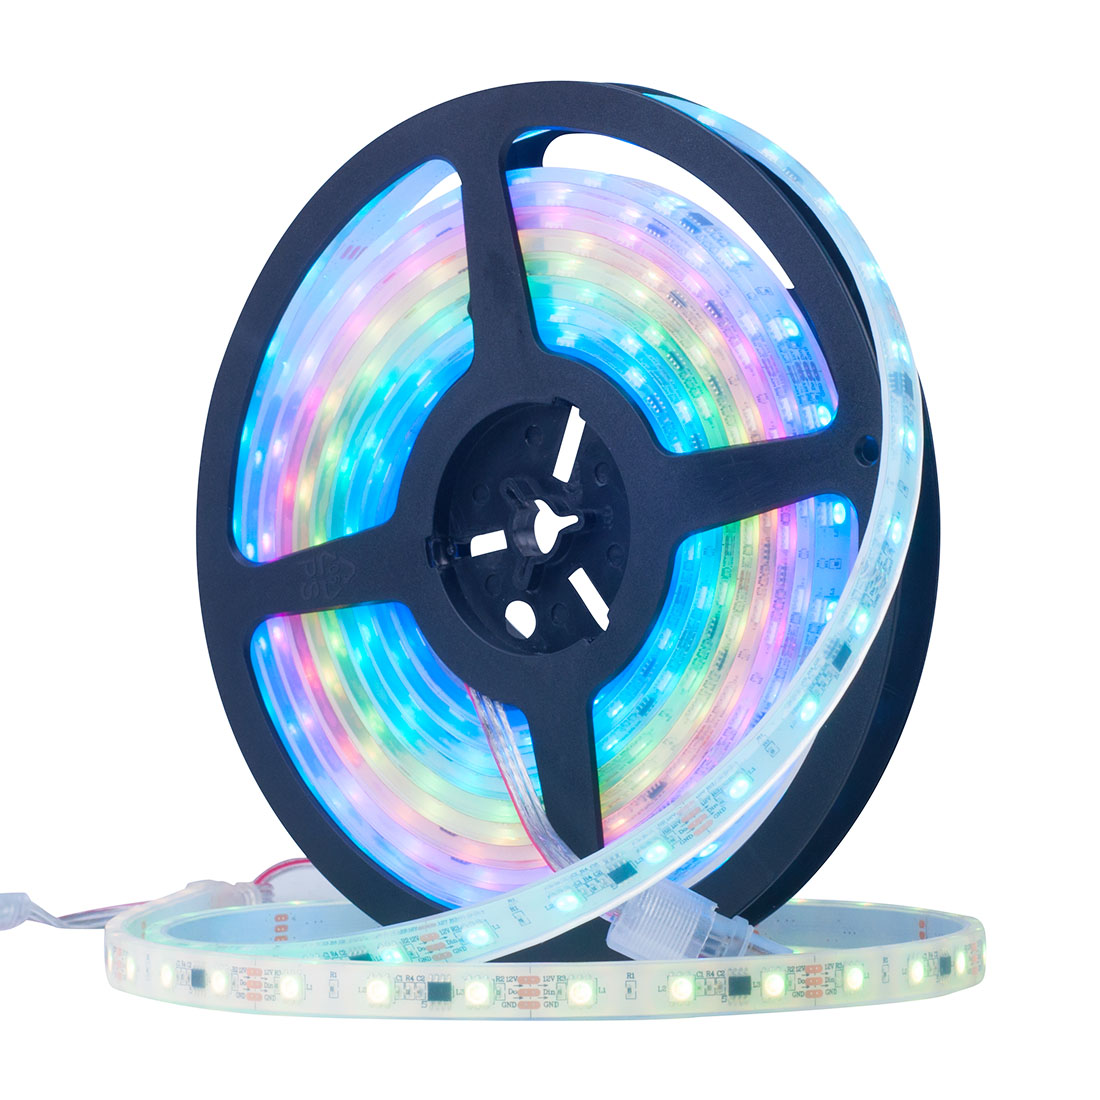 Led Strips Lovely Wholesale 5m Ws2811 Dc12v Led Strip Ultra Bright 5050 Smd Rgb Leds 30/60led/m Connector In Silicone Packaging Better Waterproof In Pain Led Lighting